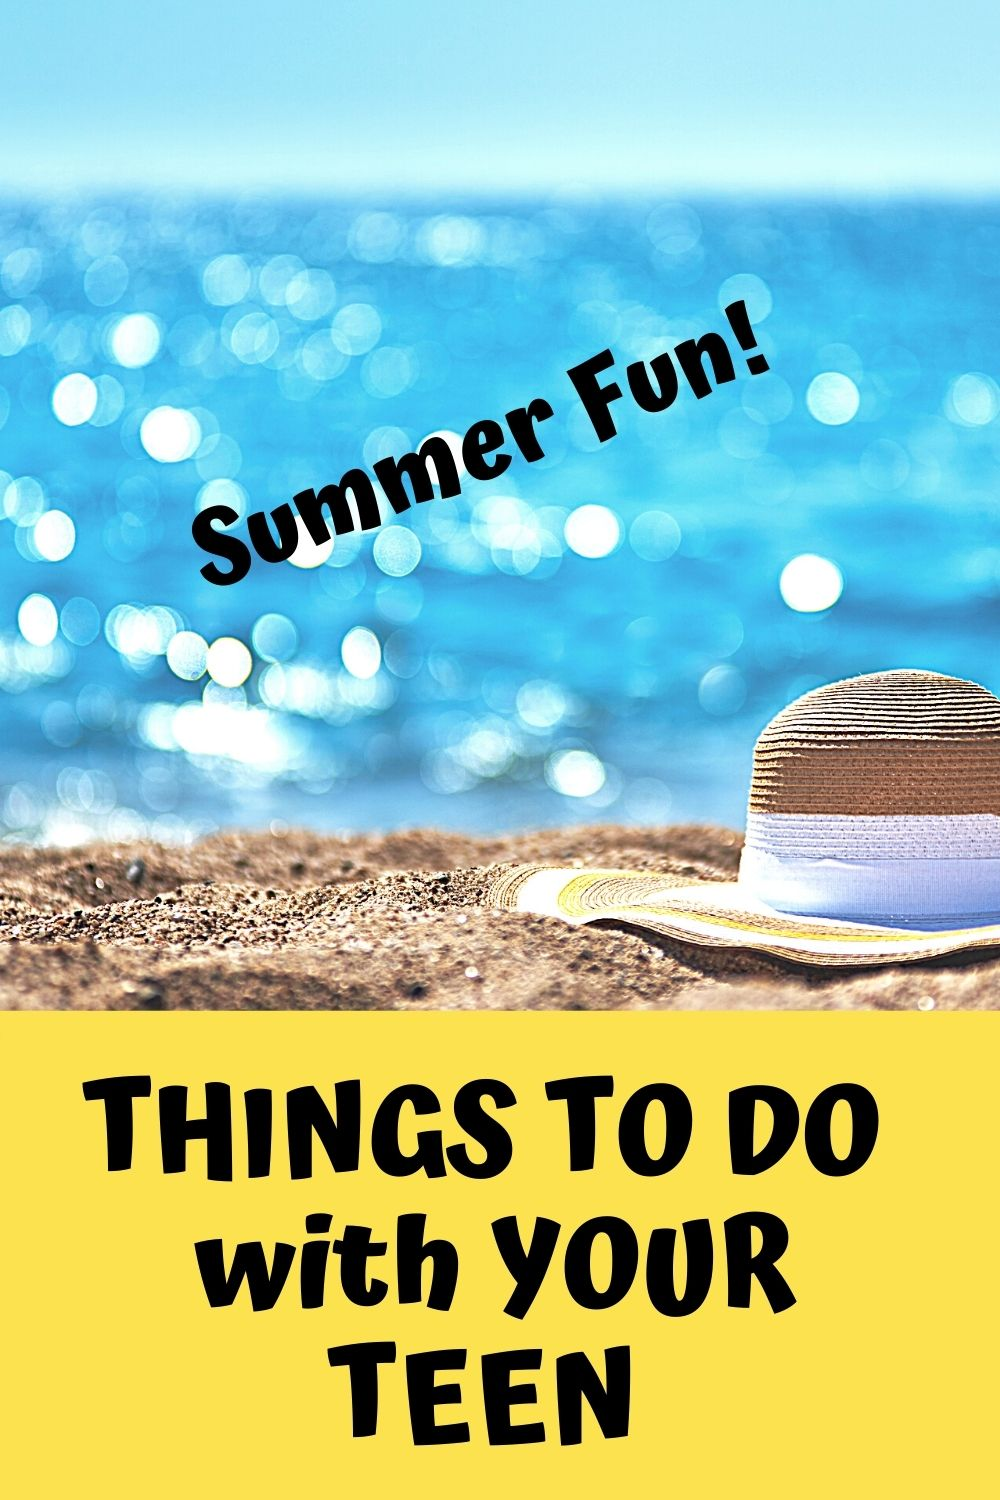 Summer fun. Things to do with your teen. (A sunhat on a sandy beach. Sunrays dancing on the water.)